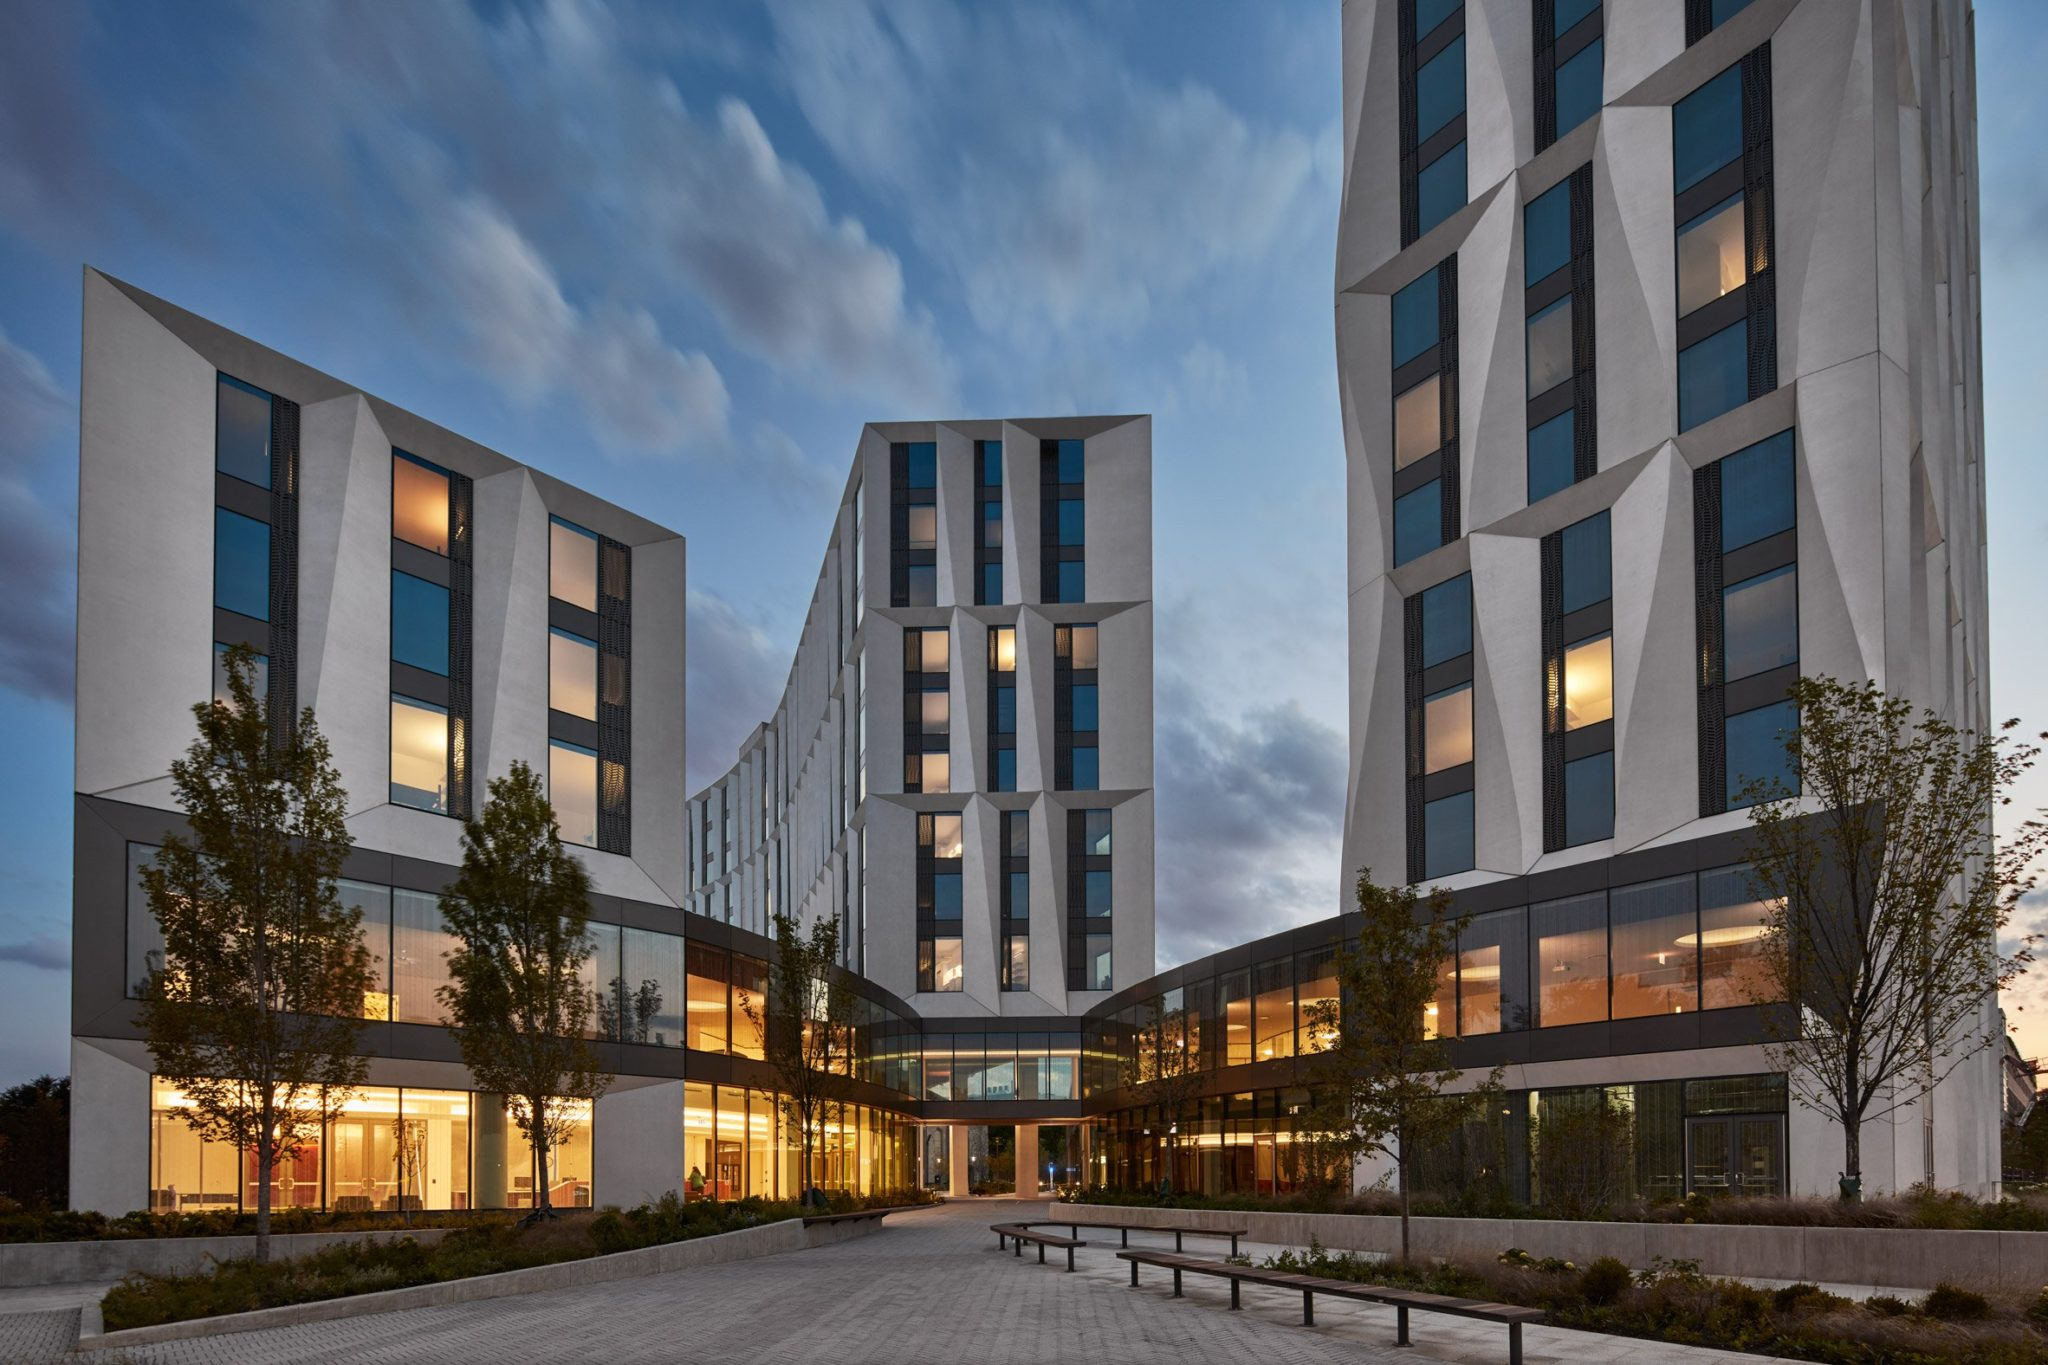 Tom Harris Photography provides an emotive shot of US firm Studio Gang's student residential complex for the University of Chicago that features towers sheathed in glass and sculptural panels